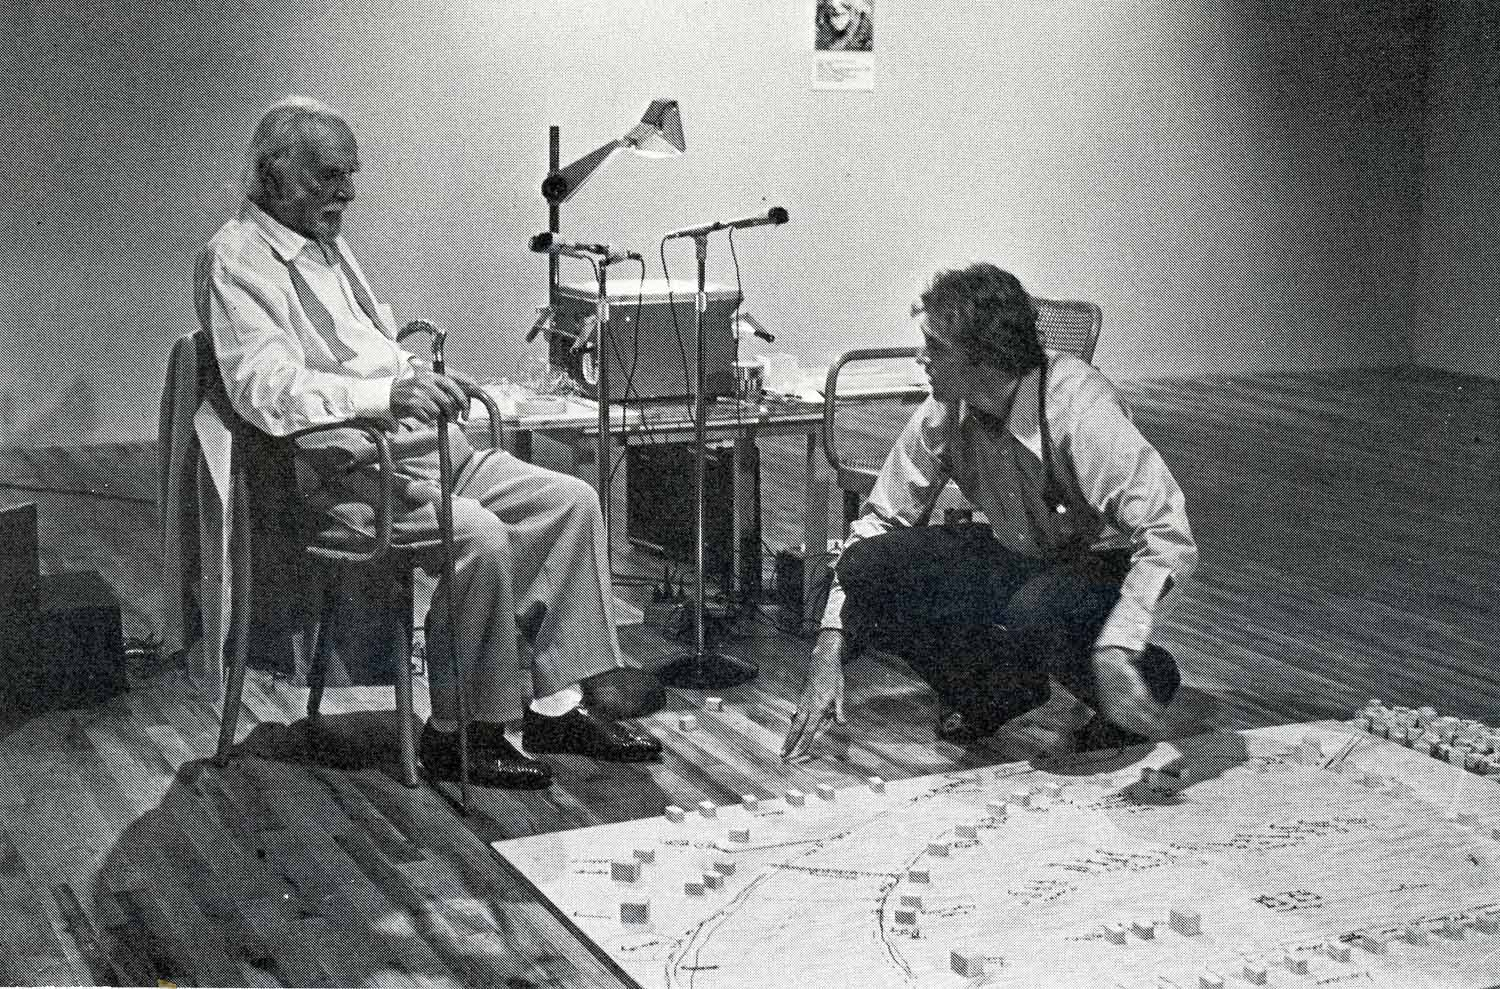 Roger Welsh interviews Harry Leiberman for his series, Memory Map, at John Gibson Gallery, 1973